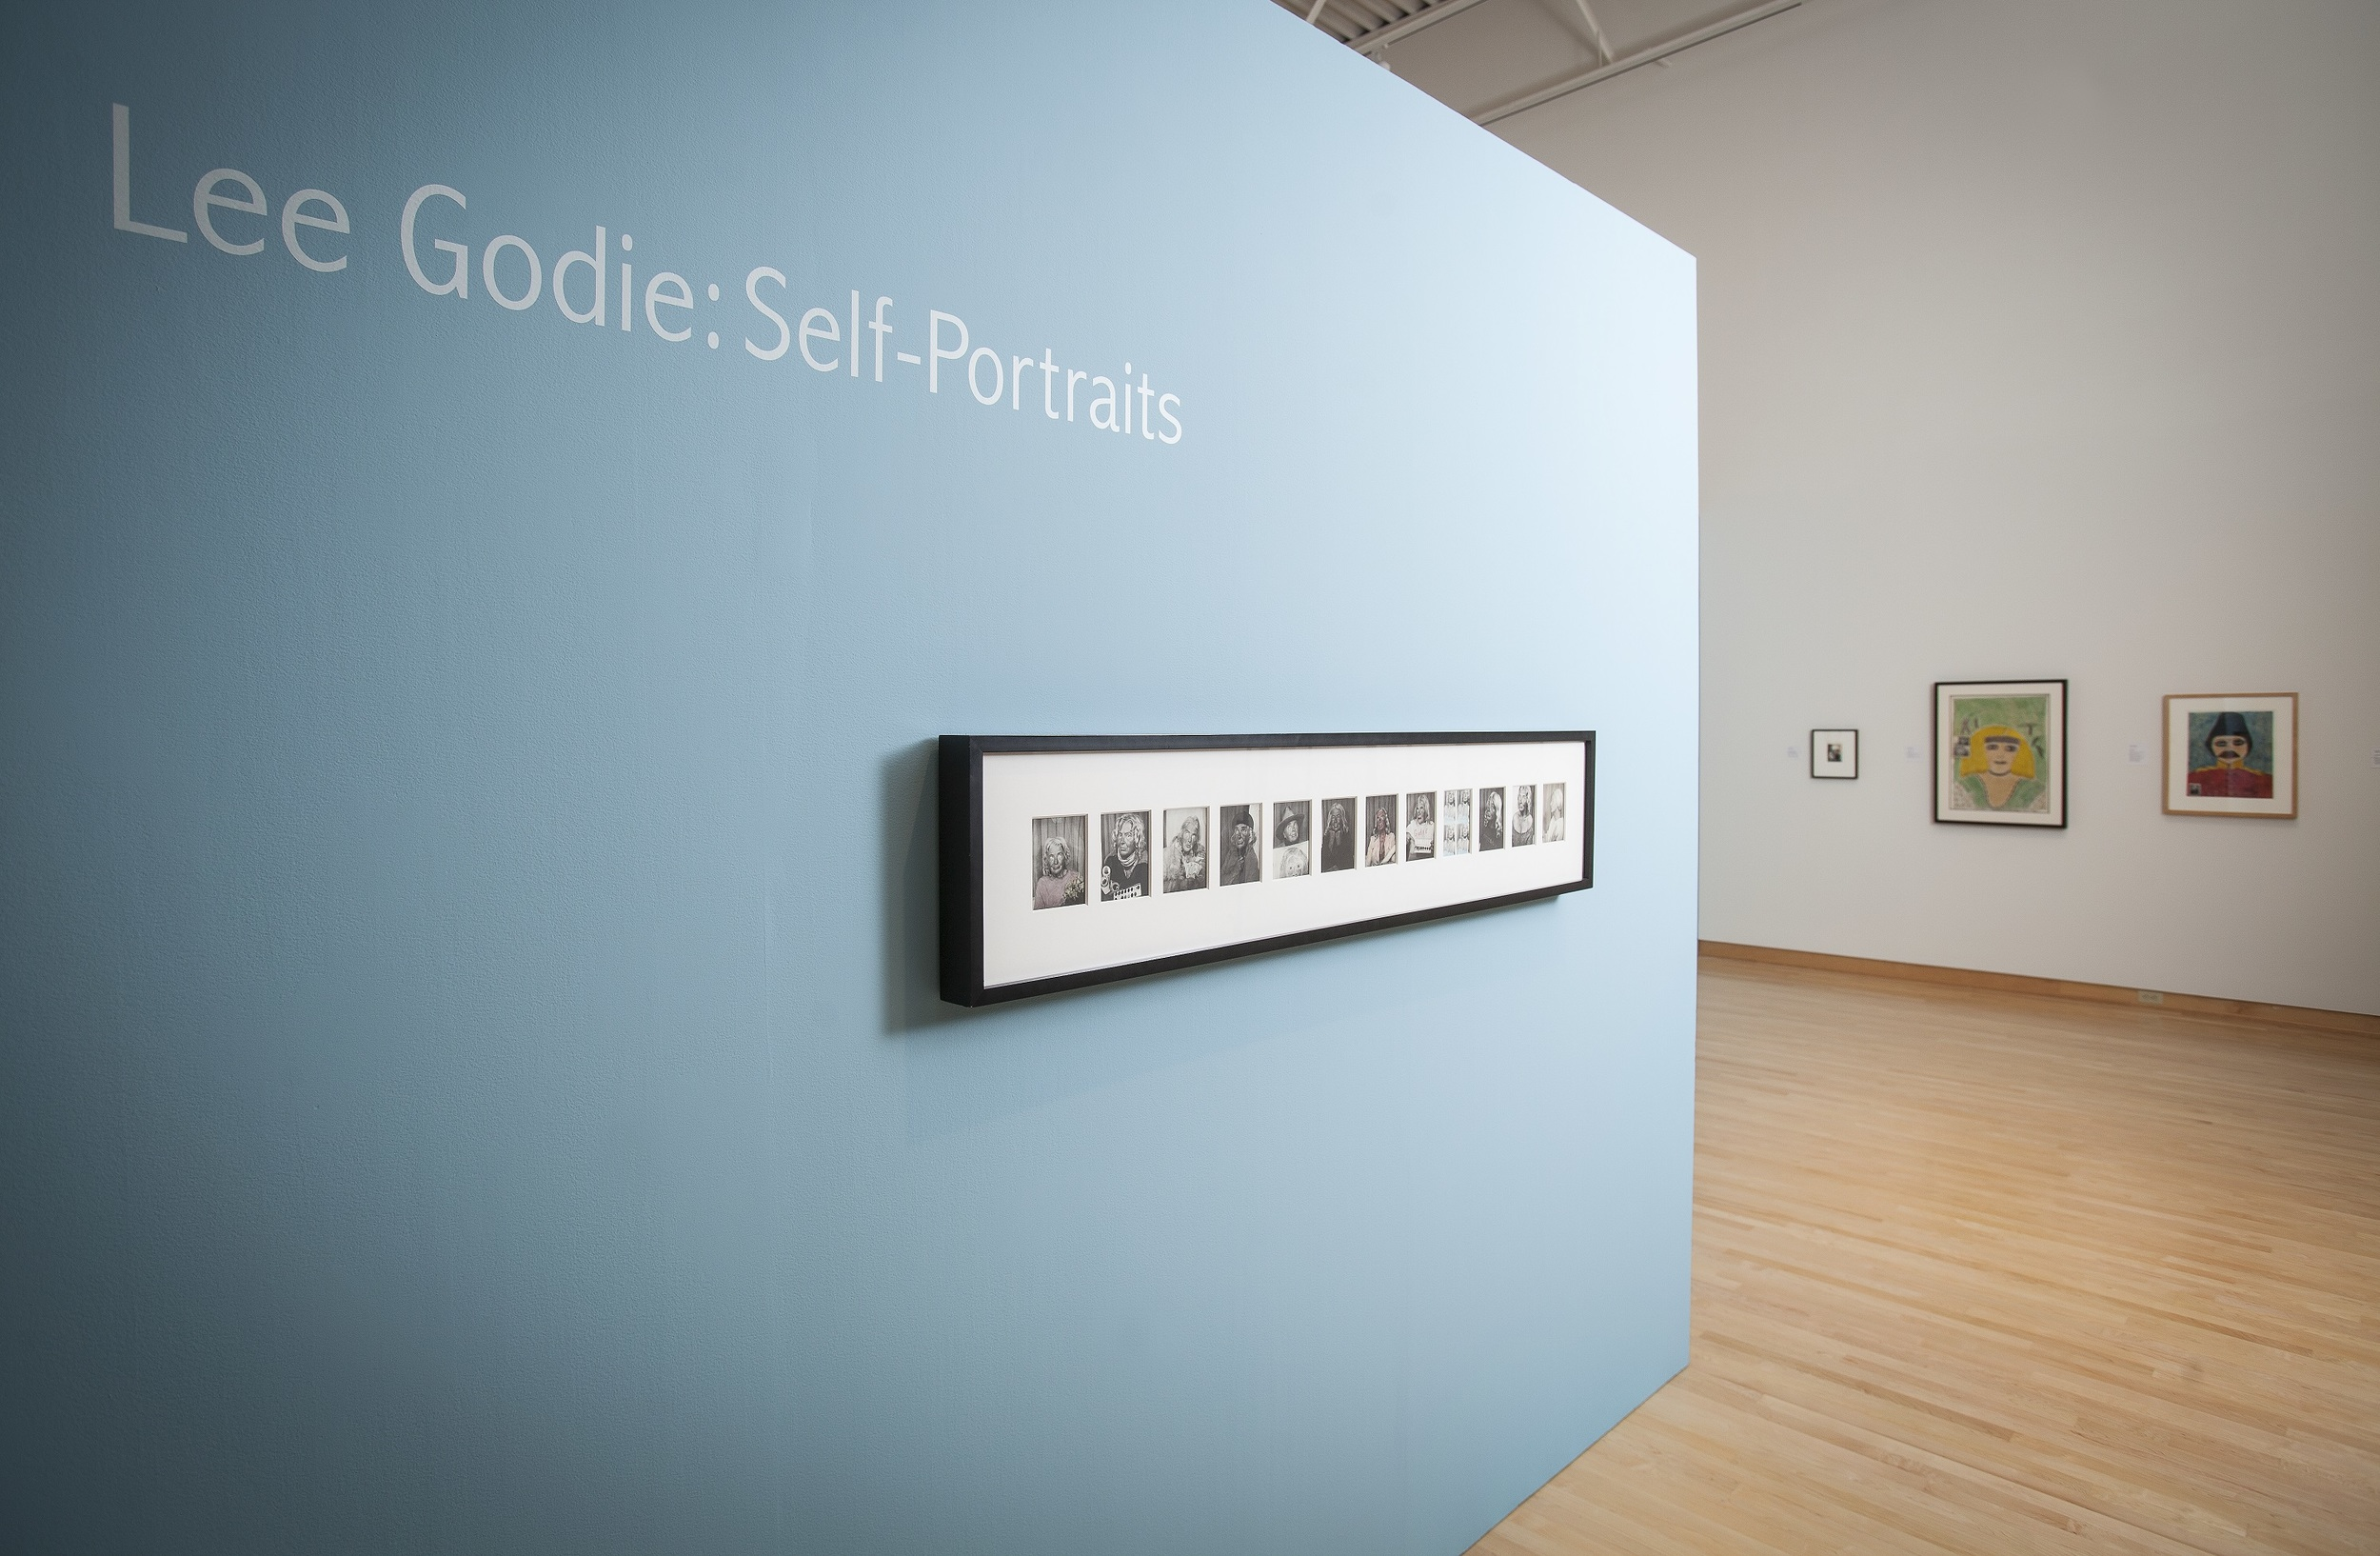 Installation view of Lee Godie: Self-Portraits at the John Michael Kohler Arts Center, 9/2015.